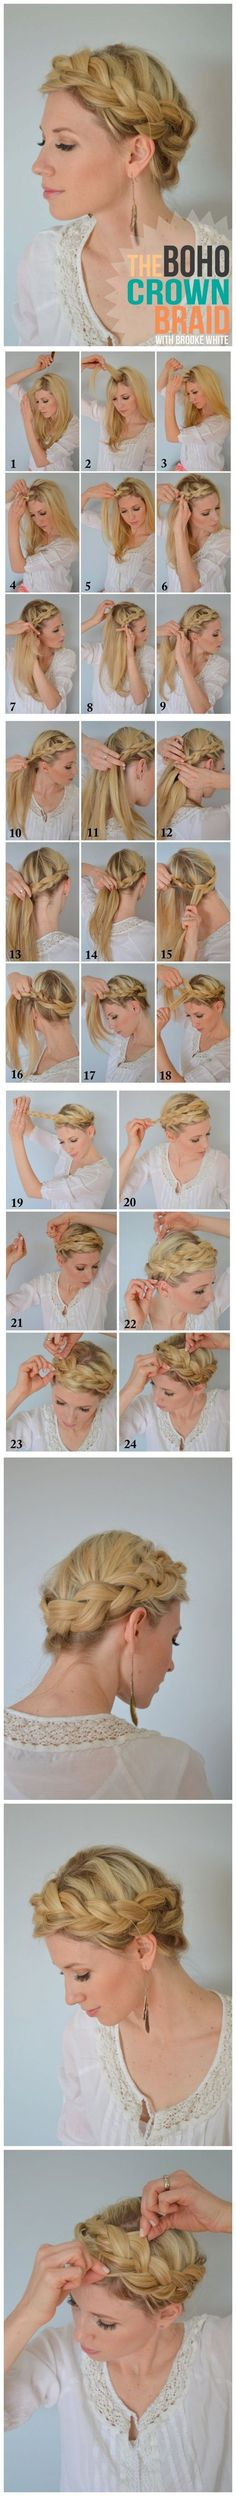 How To Make Boho Crown Braid Tutorial--I can never figure things like this out